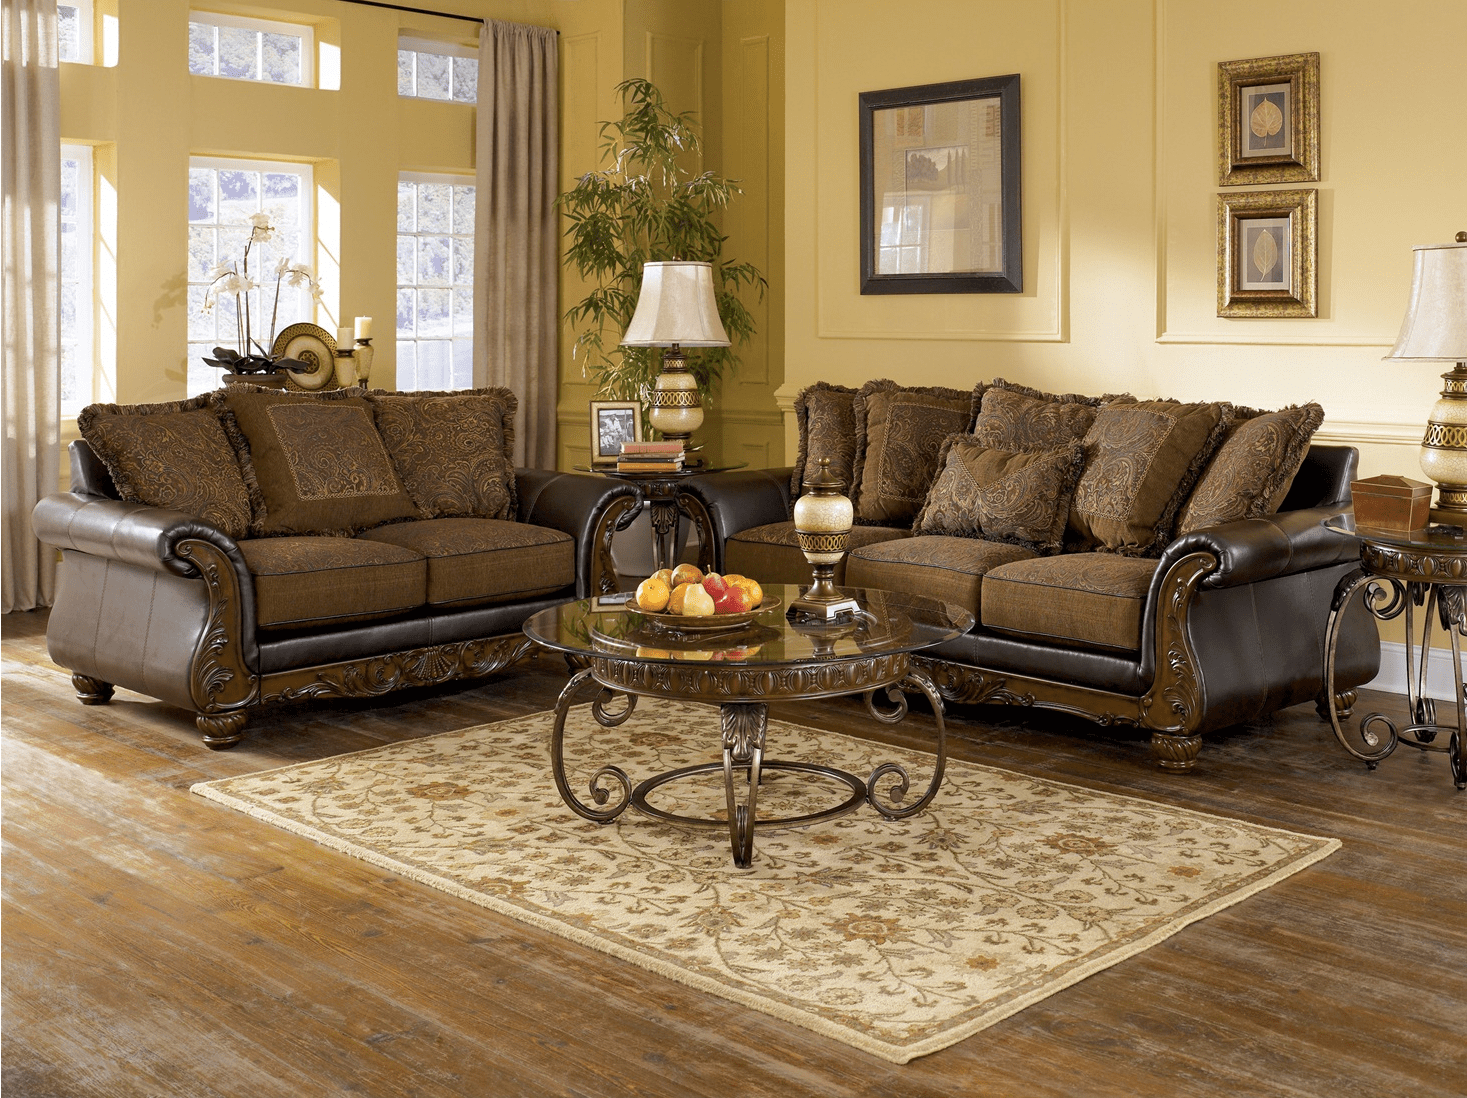 The possibilities are endless when you use white as the base of your color palette for your living room furniture. Wilmington Traditional Living Room Furniture Set by Ashley